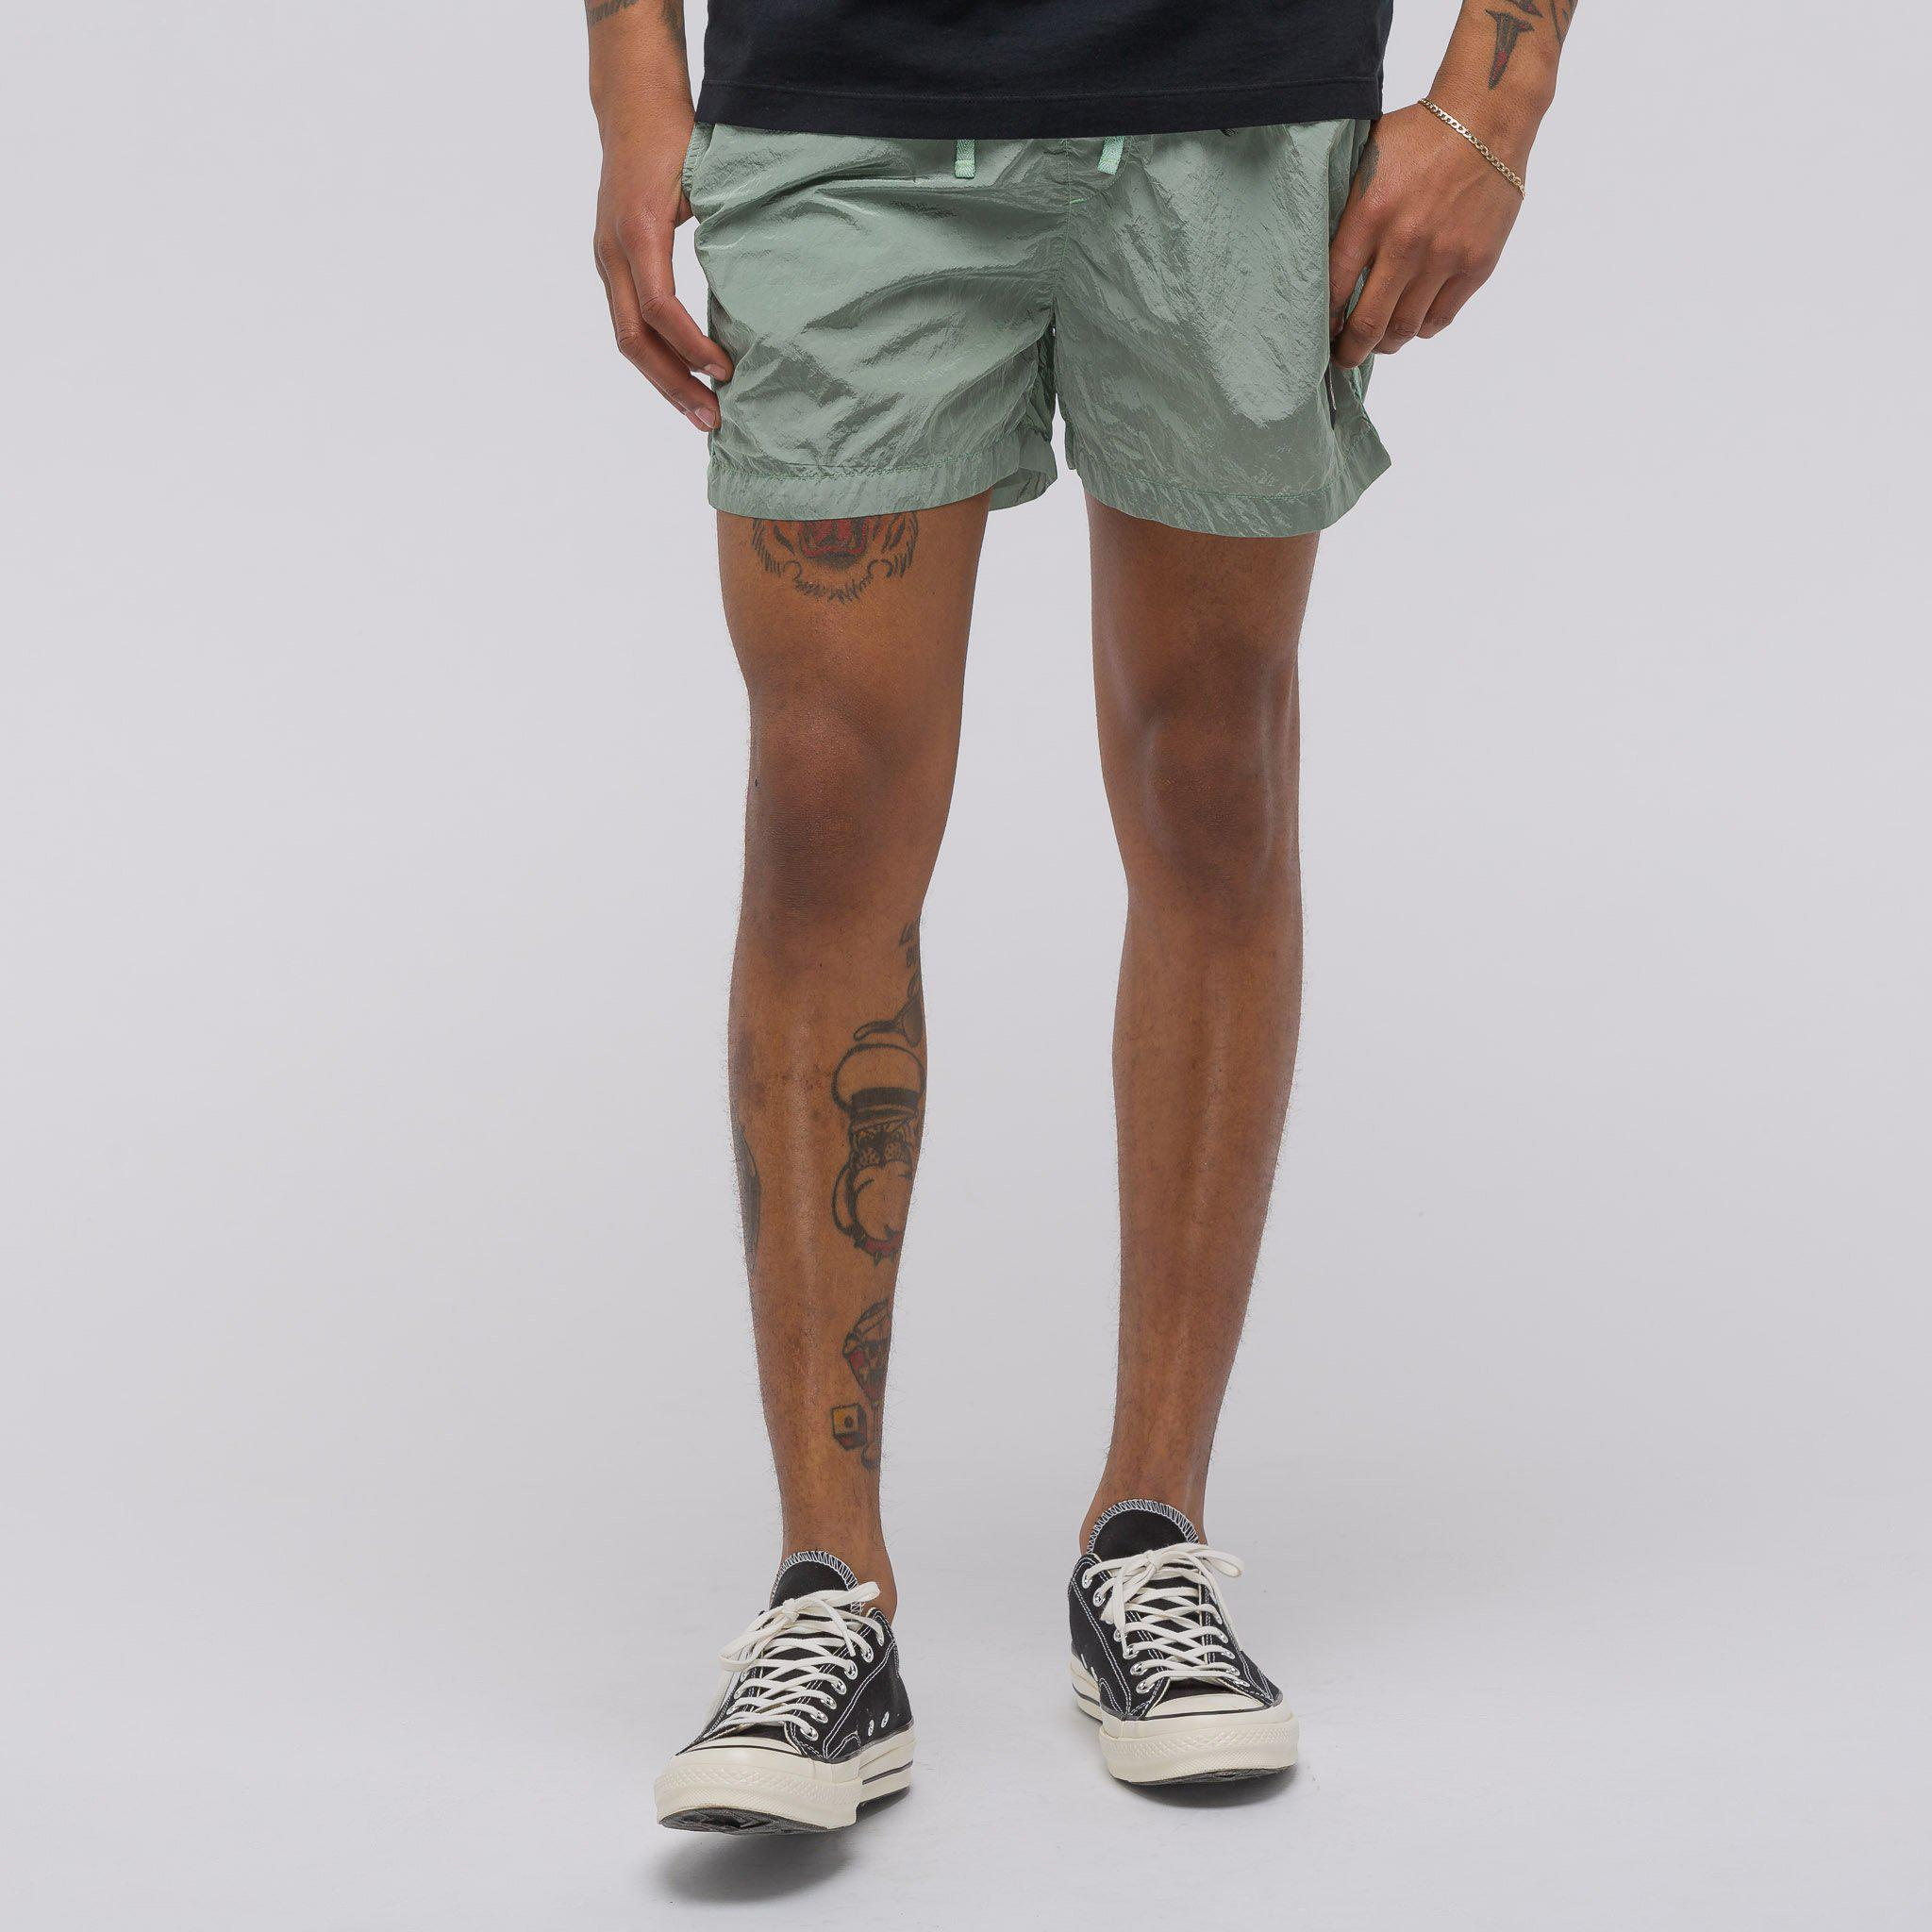 93d08bf2ed Stone Island B0643 Shorts In Green in Green for Men - Lyst